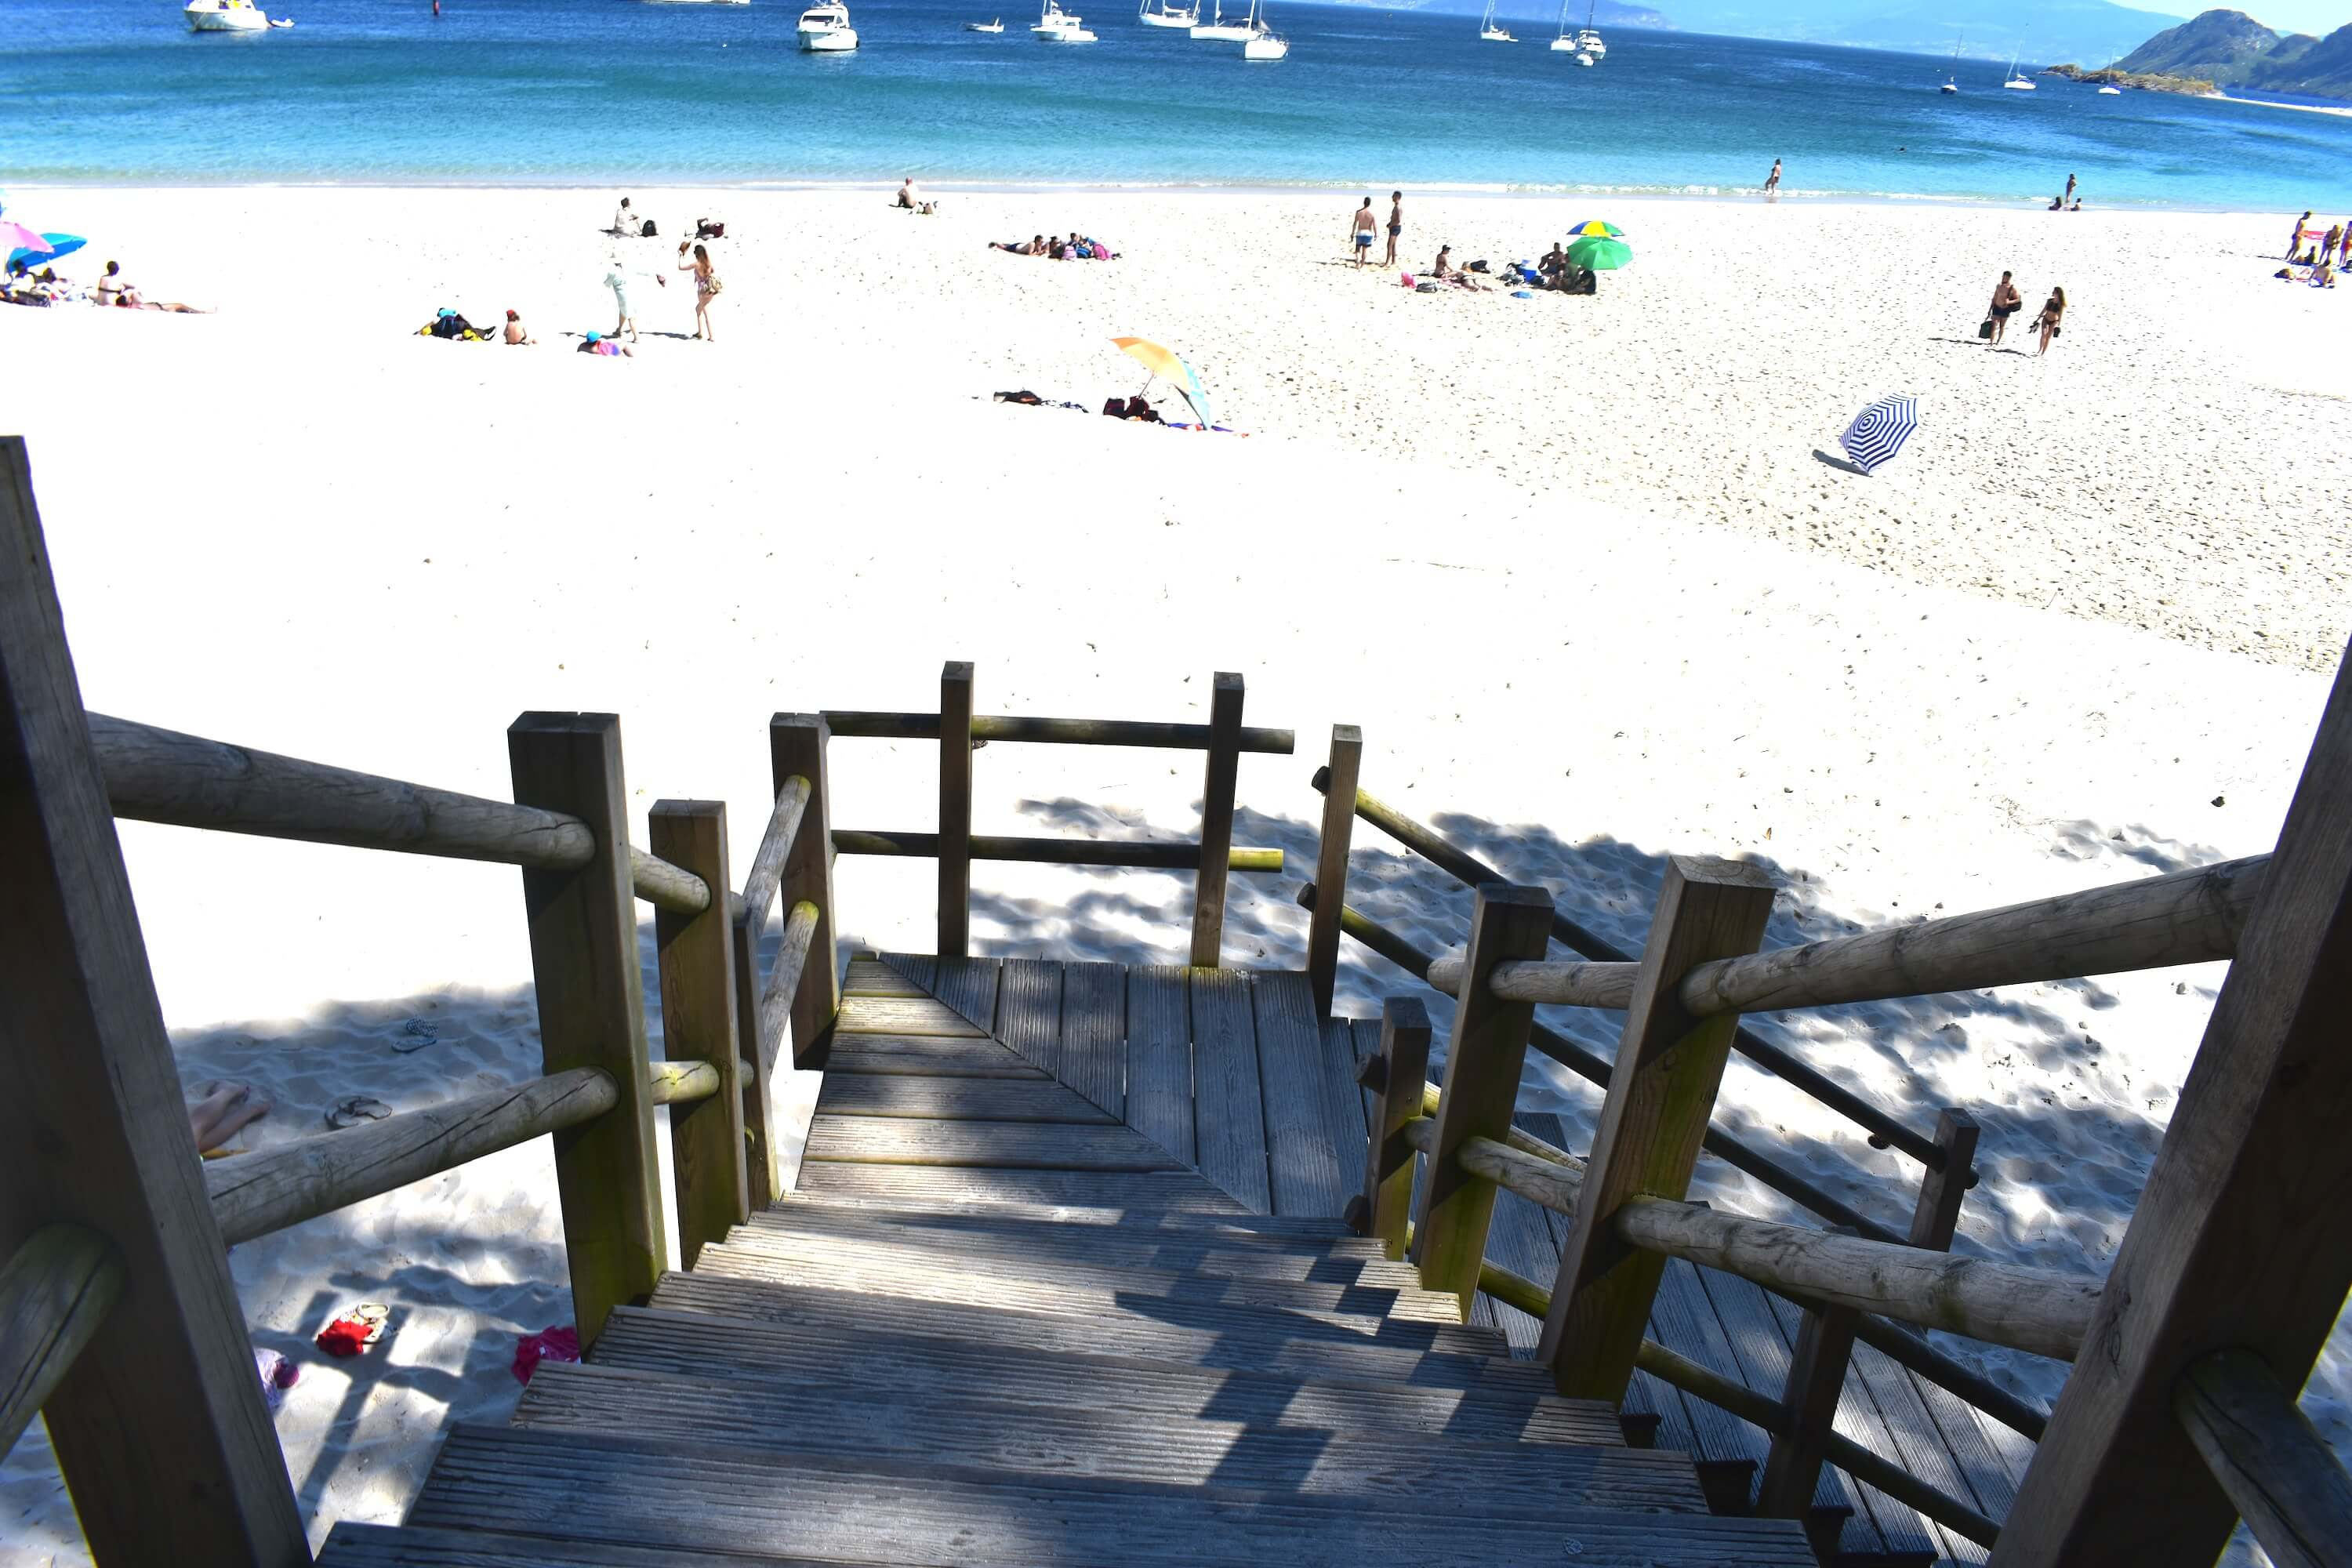 20 photos that will inspire you to visit the Cies Islands - Galicia Travel Spain Stairs at Rodas Beach of the Cies Islands